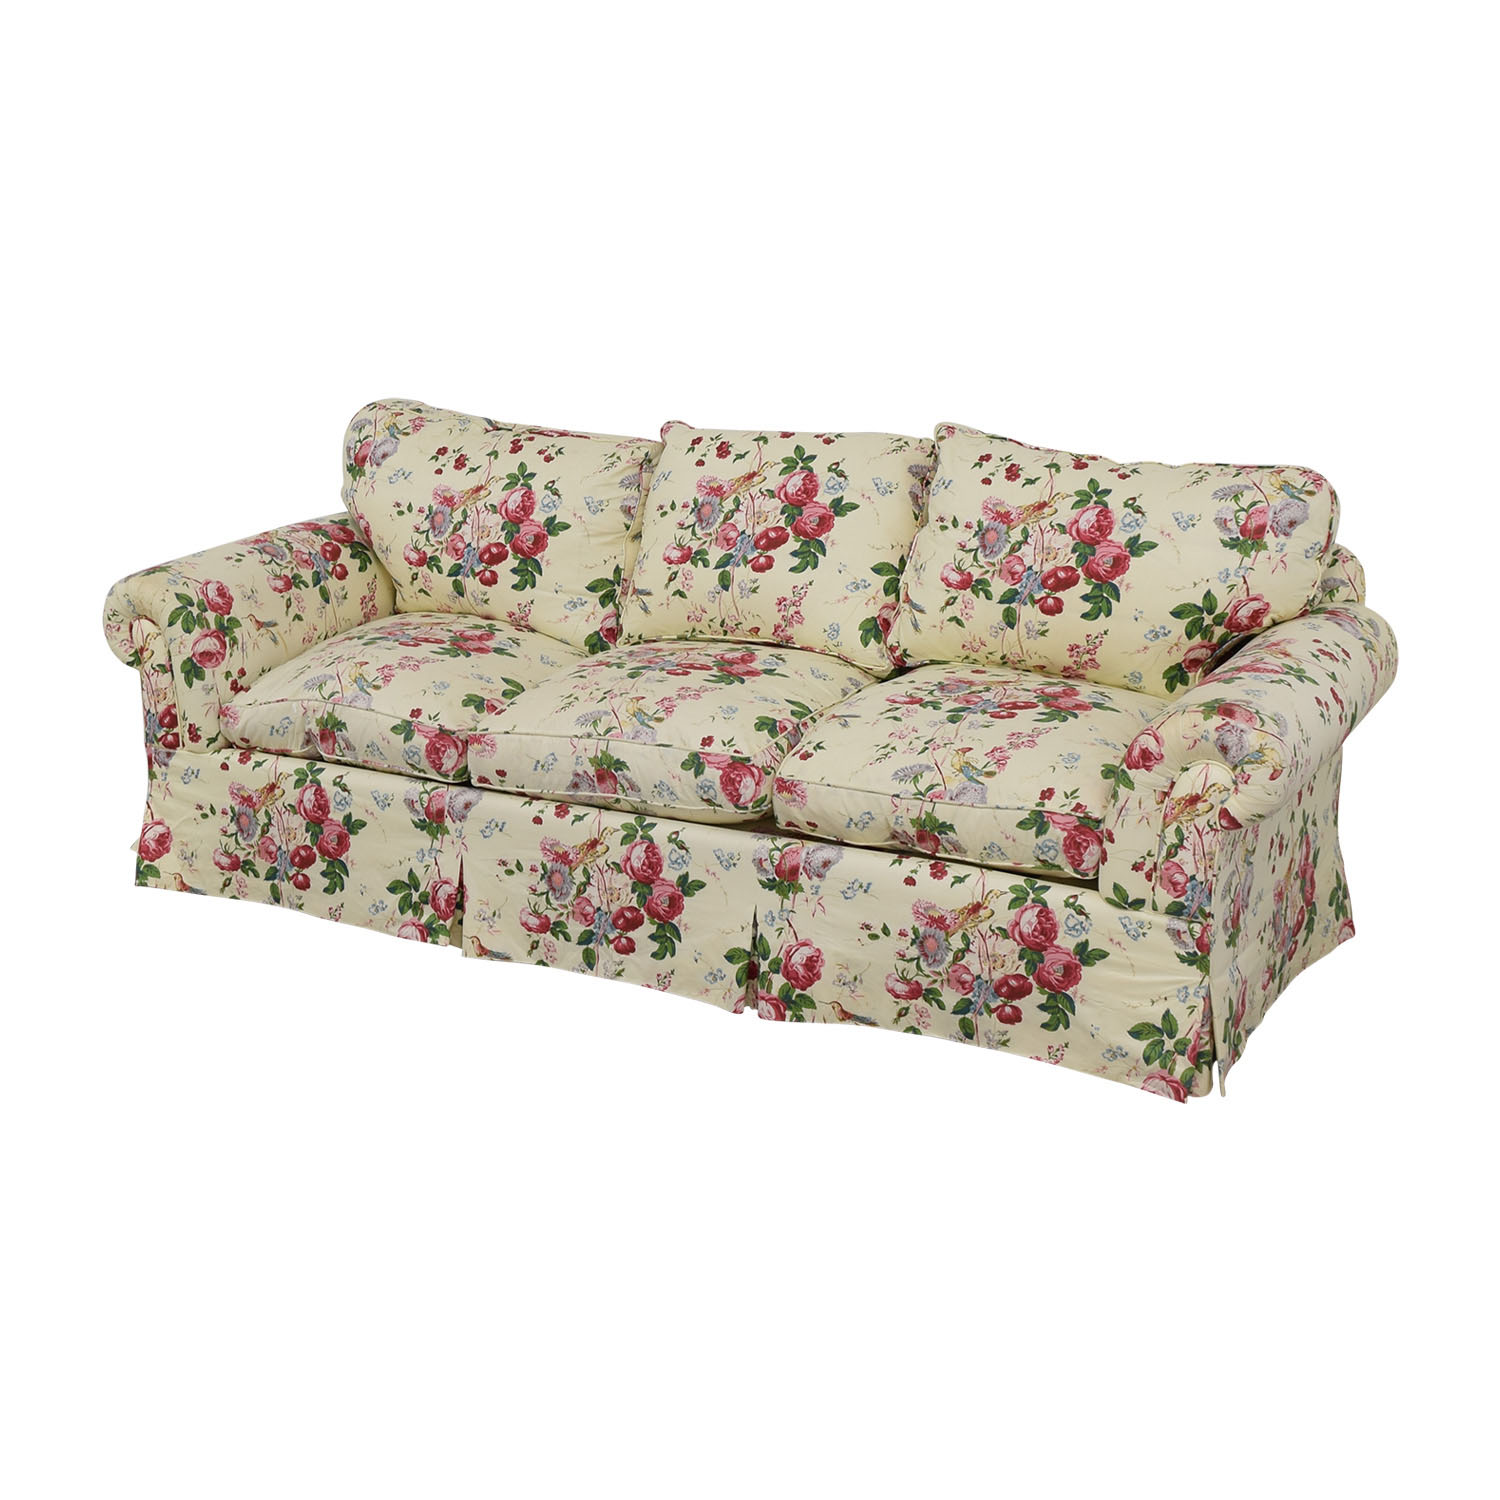 Floral on White Three-Cushion Sofa with Curved Arms dimensions